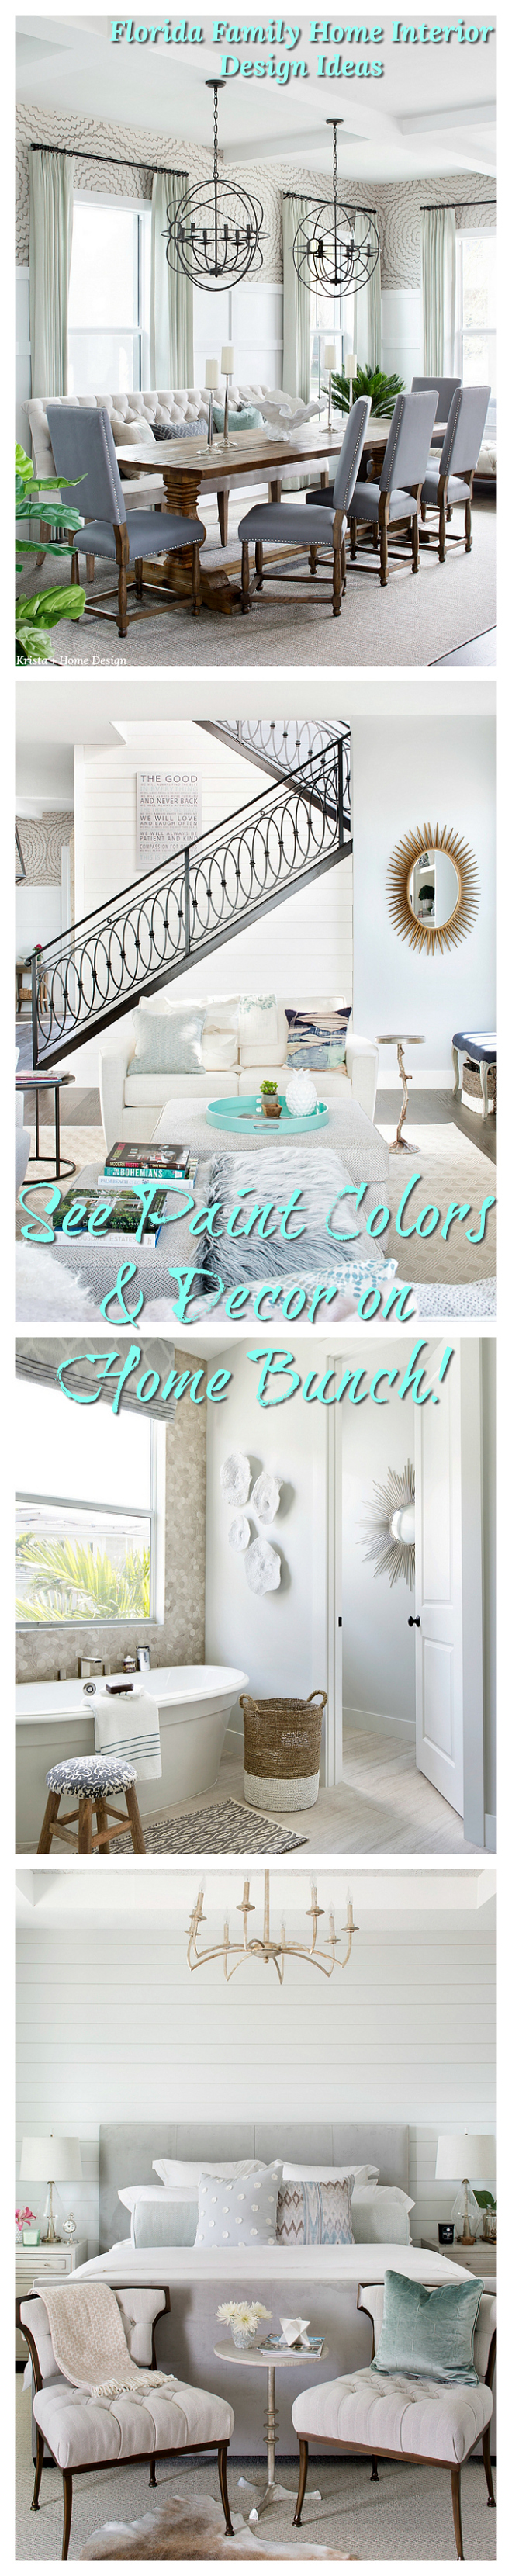 Florida Family Home Interior Design Ideas Paint Colors and Decor on Home Bunch Florida Family Home Interior Design Ideas #Florida #FamilyHome #InteriorDesignIdeas